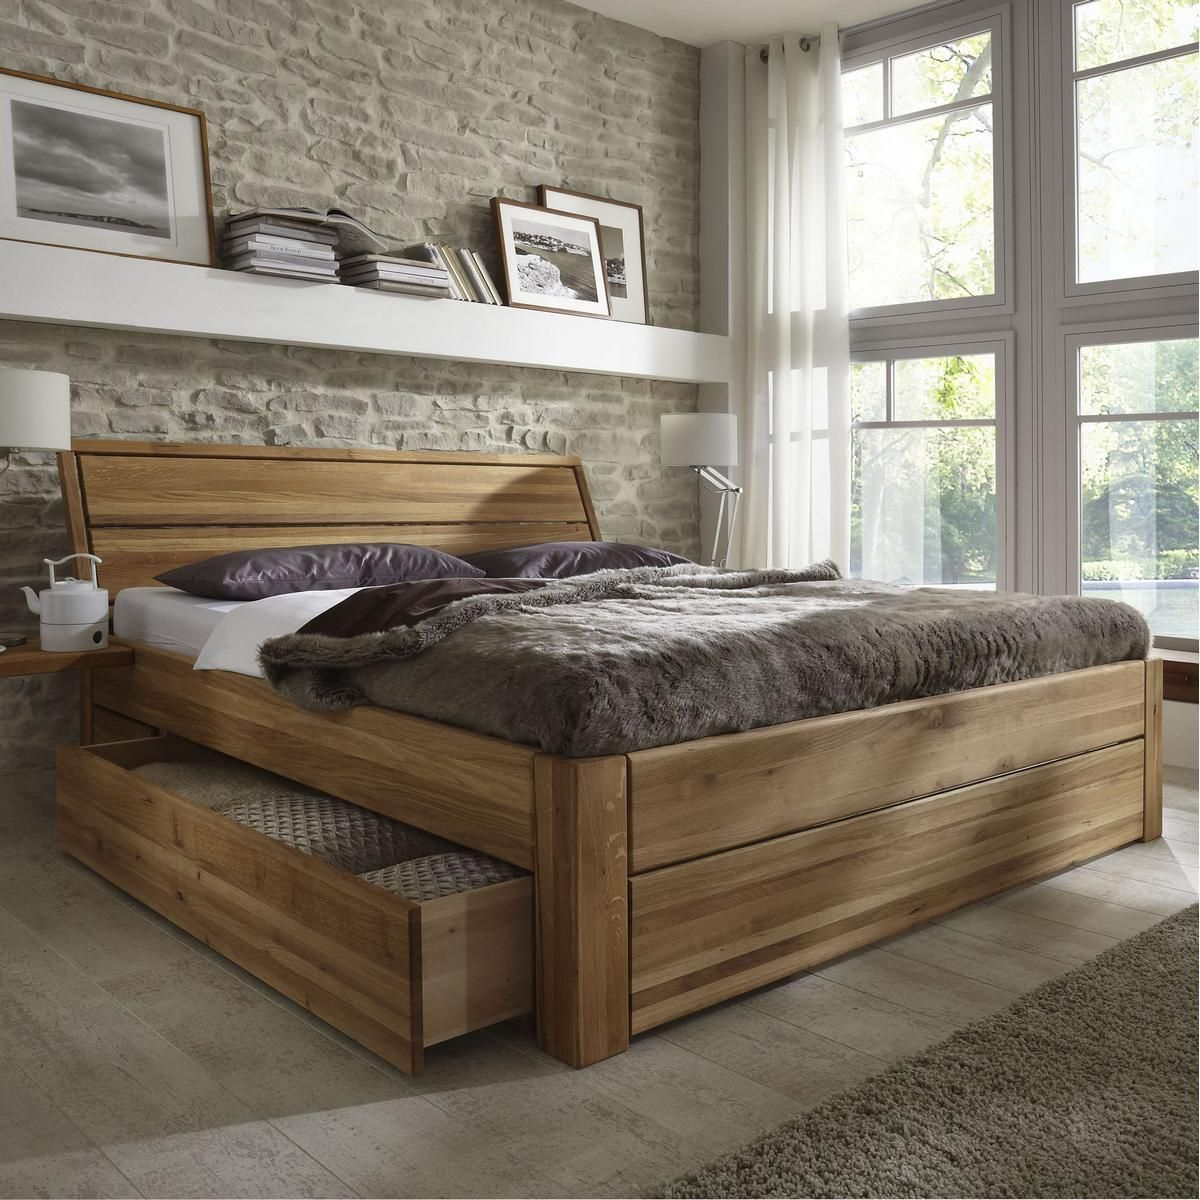 massivholz schubladenbett 180x200 holzbett bett eiche massiv ge lt schlafzimmer pinterest. Black Bedroom Furniture Sets. Home Design Ideas